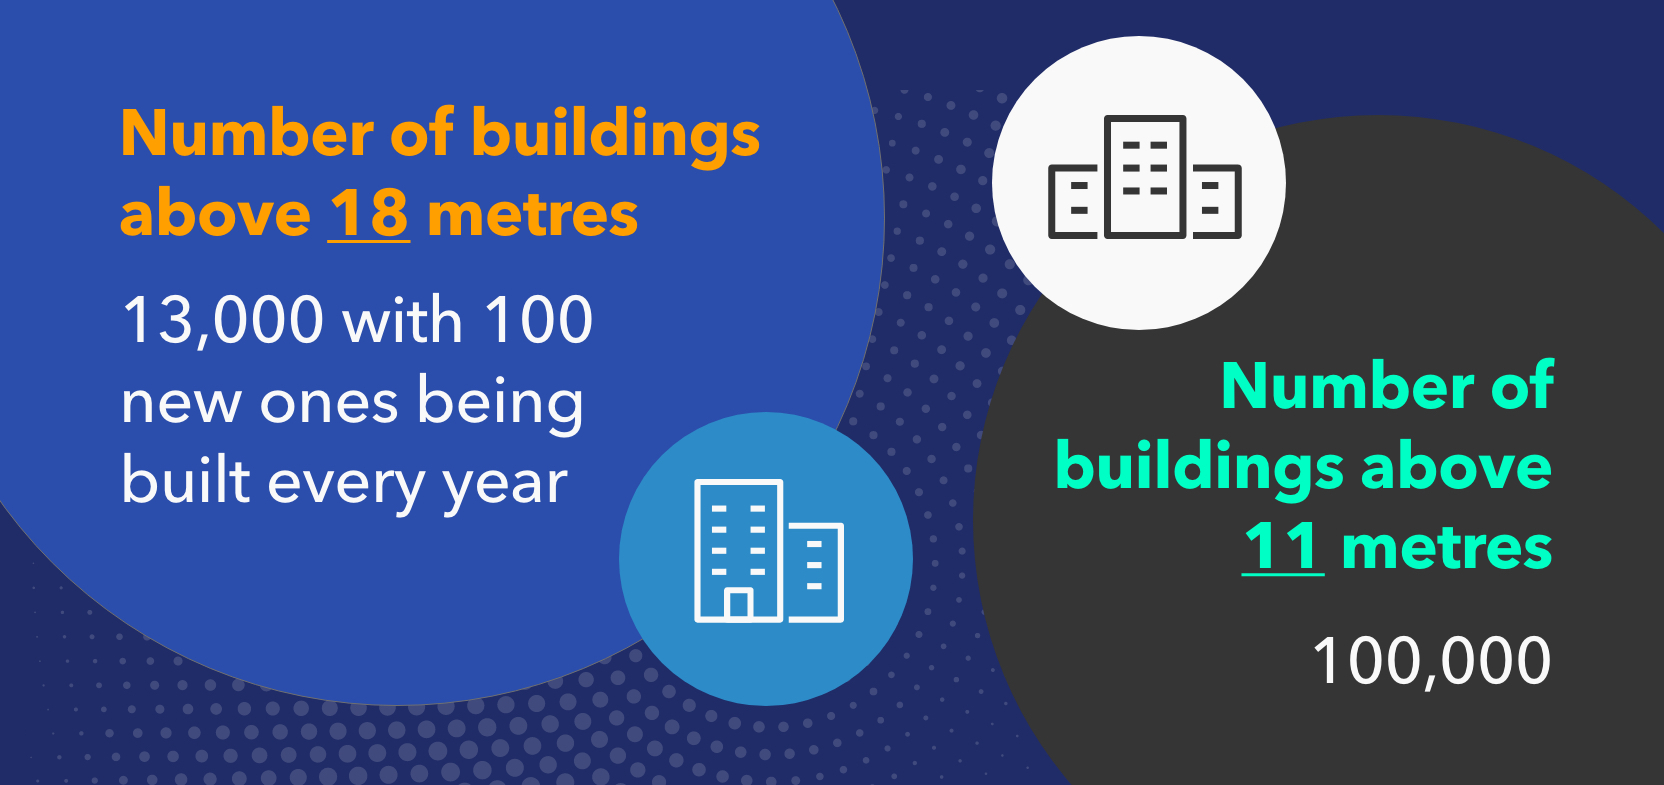 Graphic that says there are 13,000 buildings above 18 metres and 100,000 buildings above 11 metres